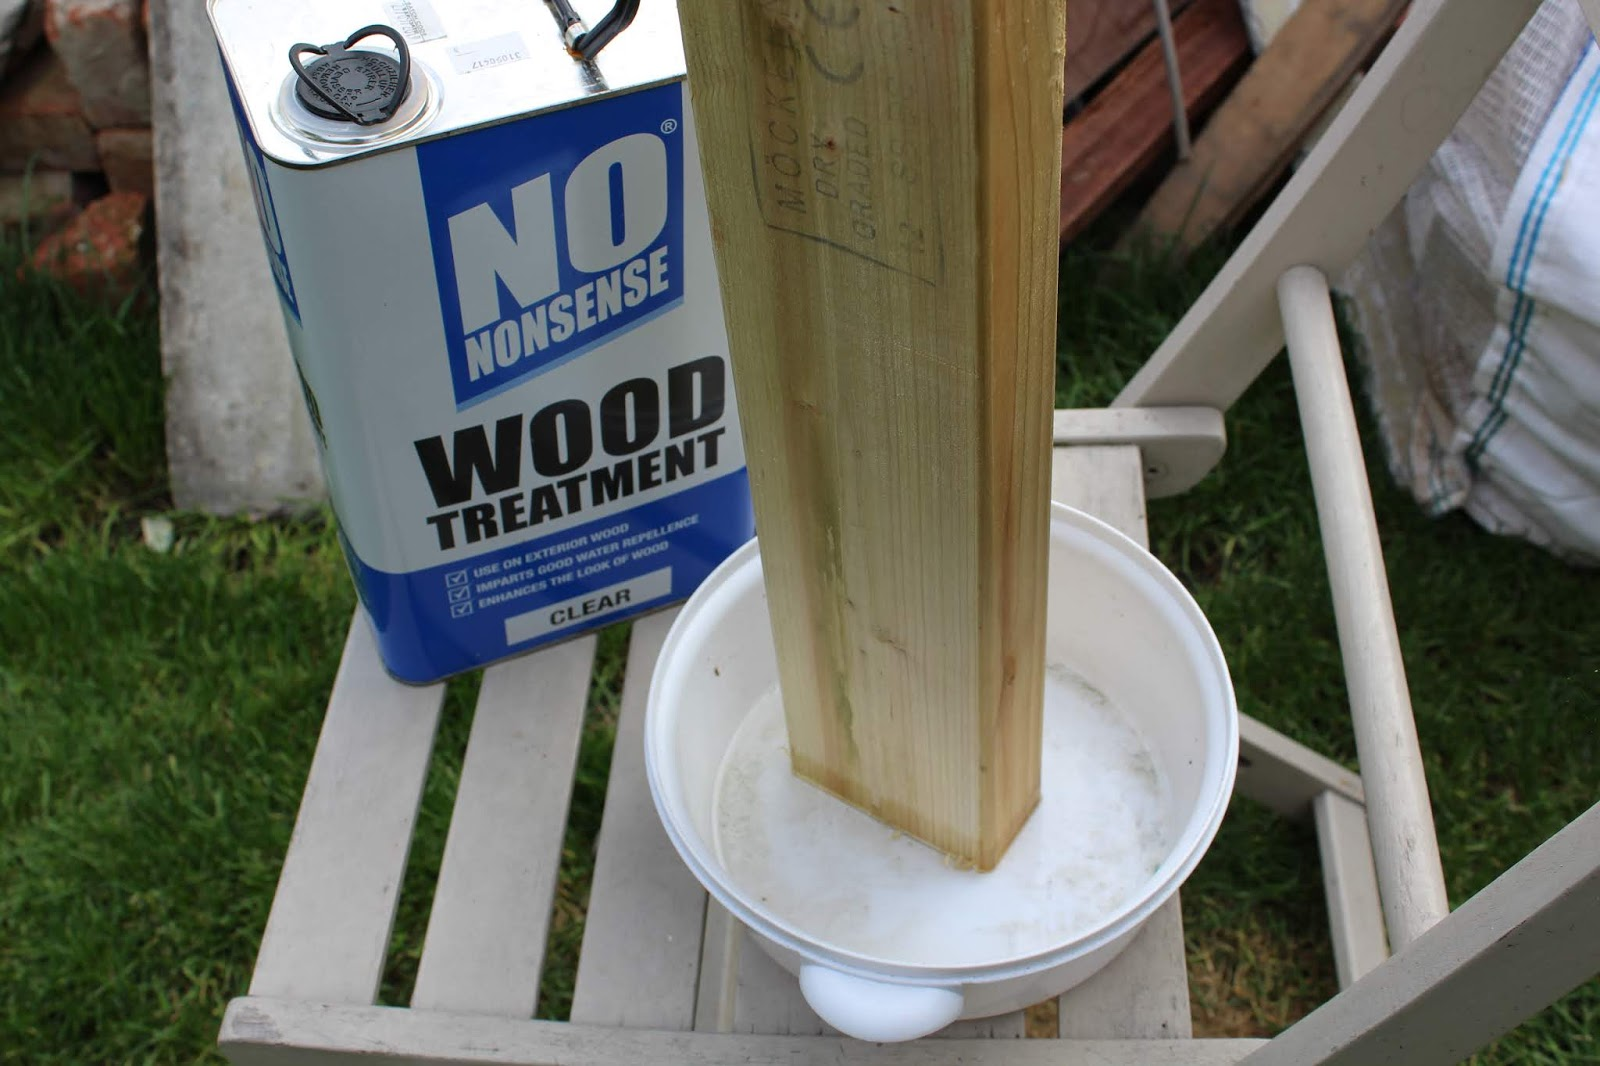 Screwfix No Nonsense Wood Treatment